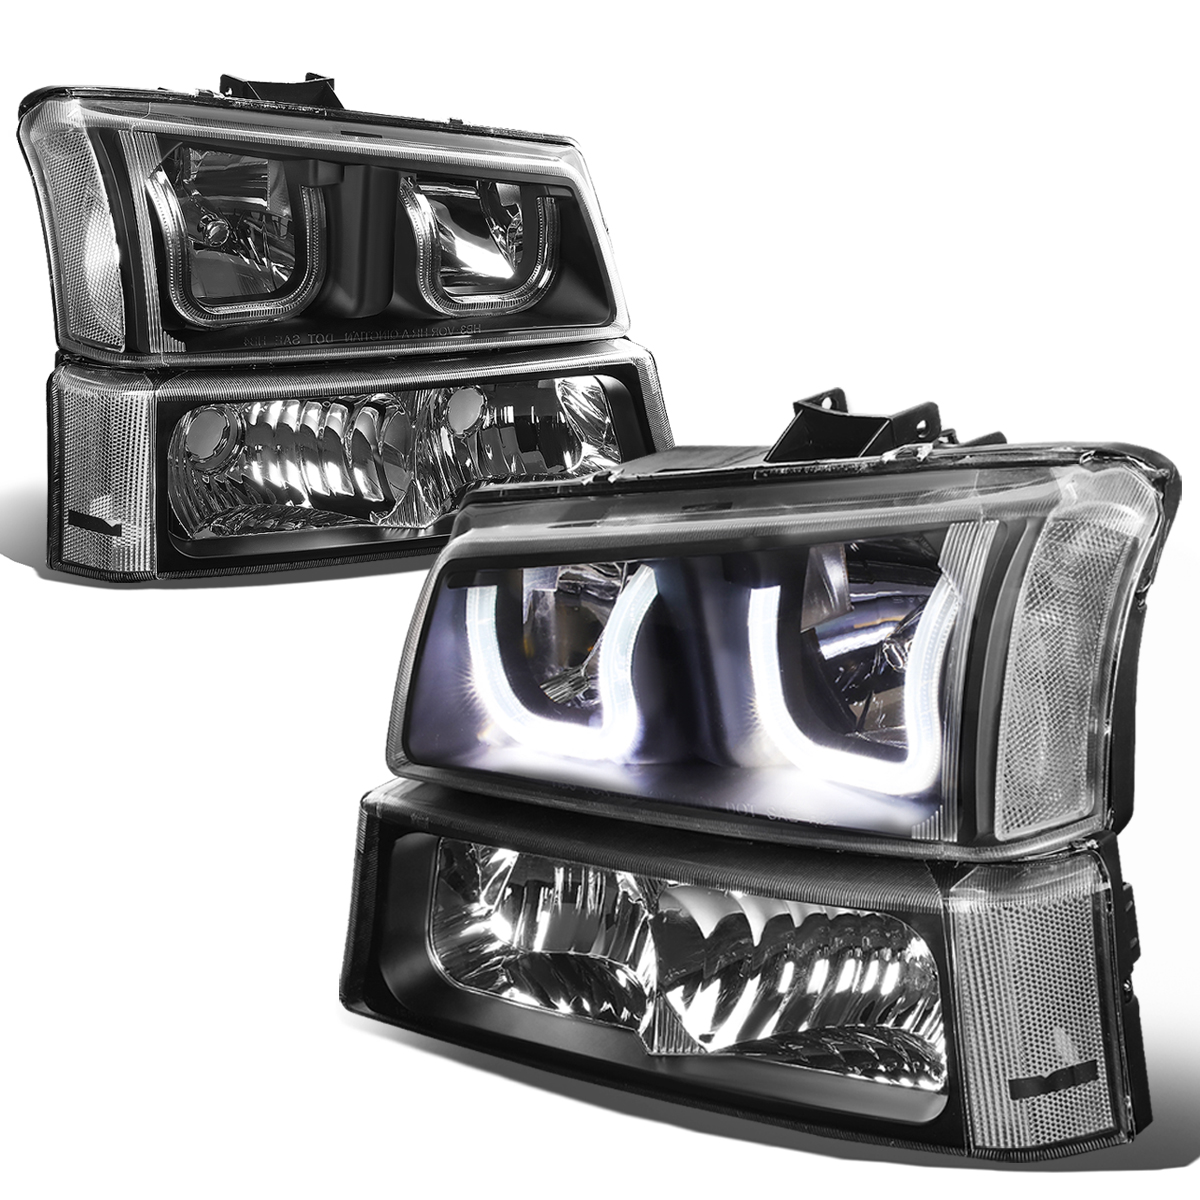 06 Chevy SilveradoAvalanche LED UHalo Headlight  Bumper Light